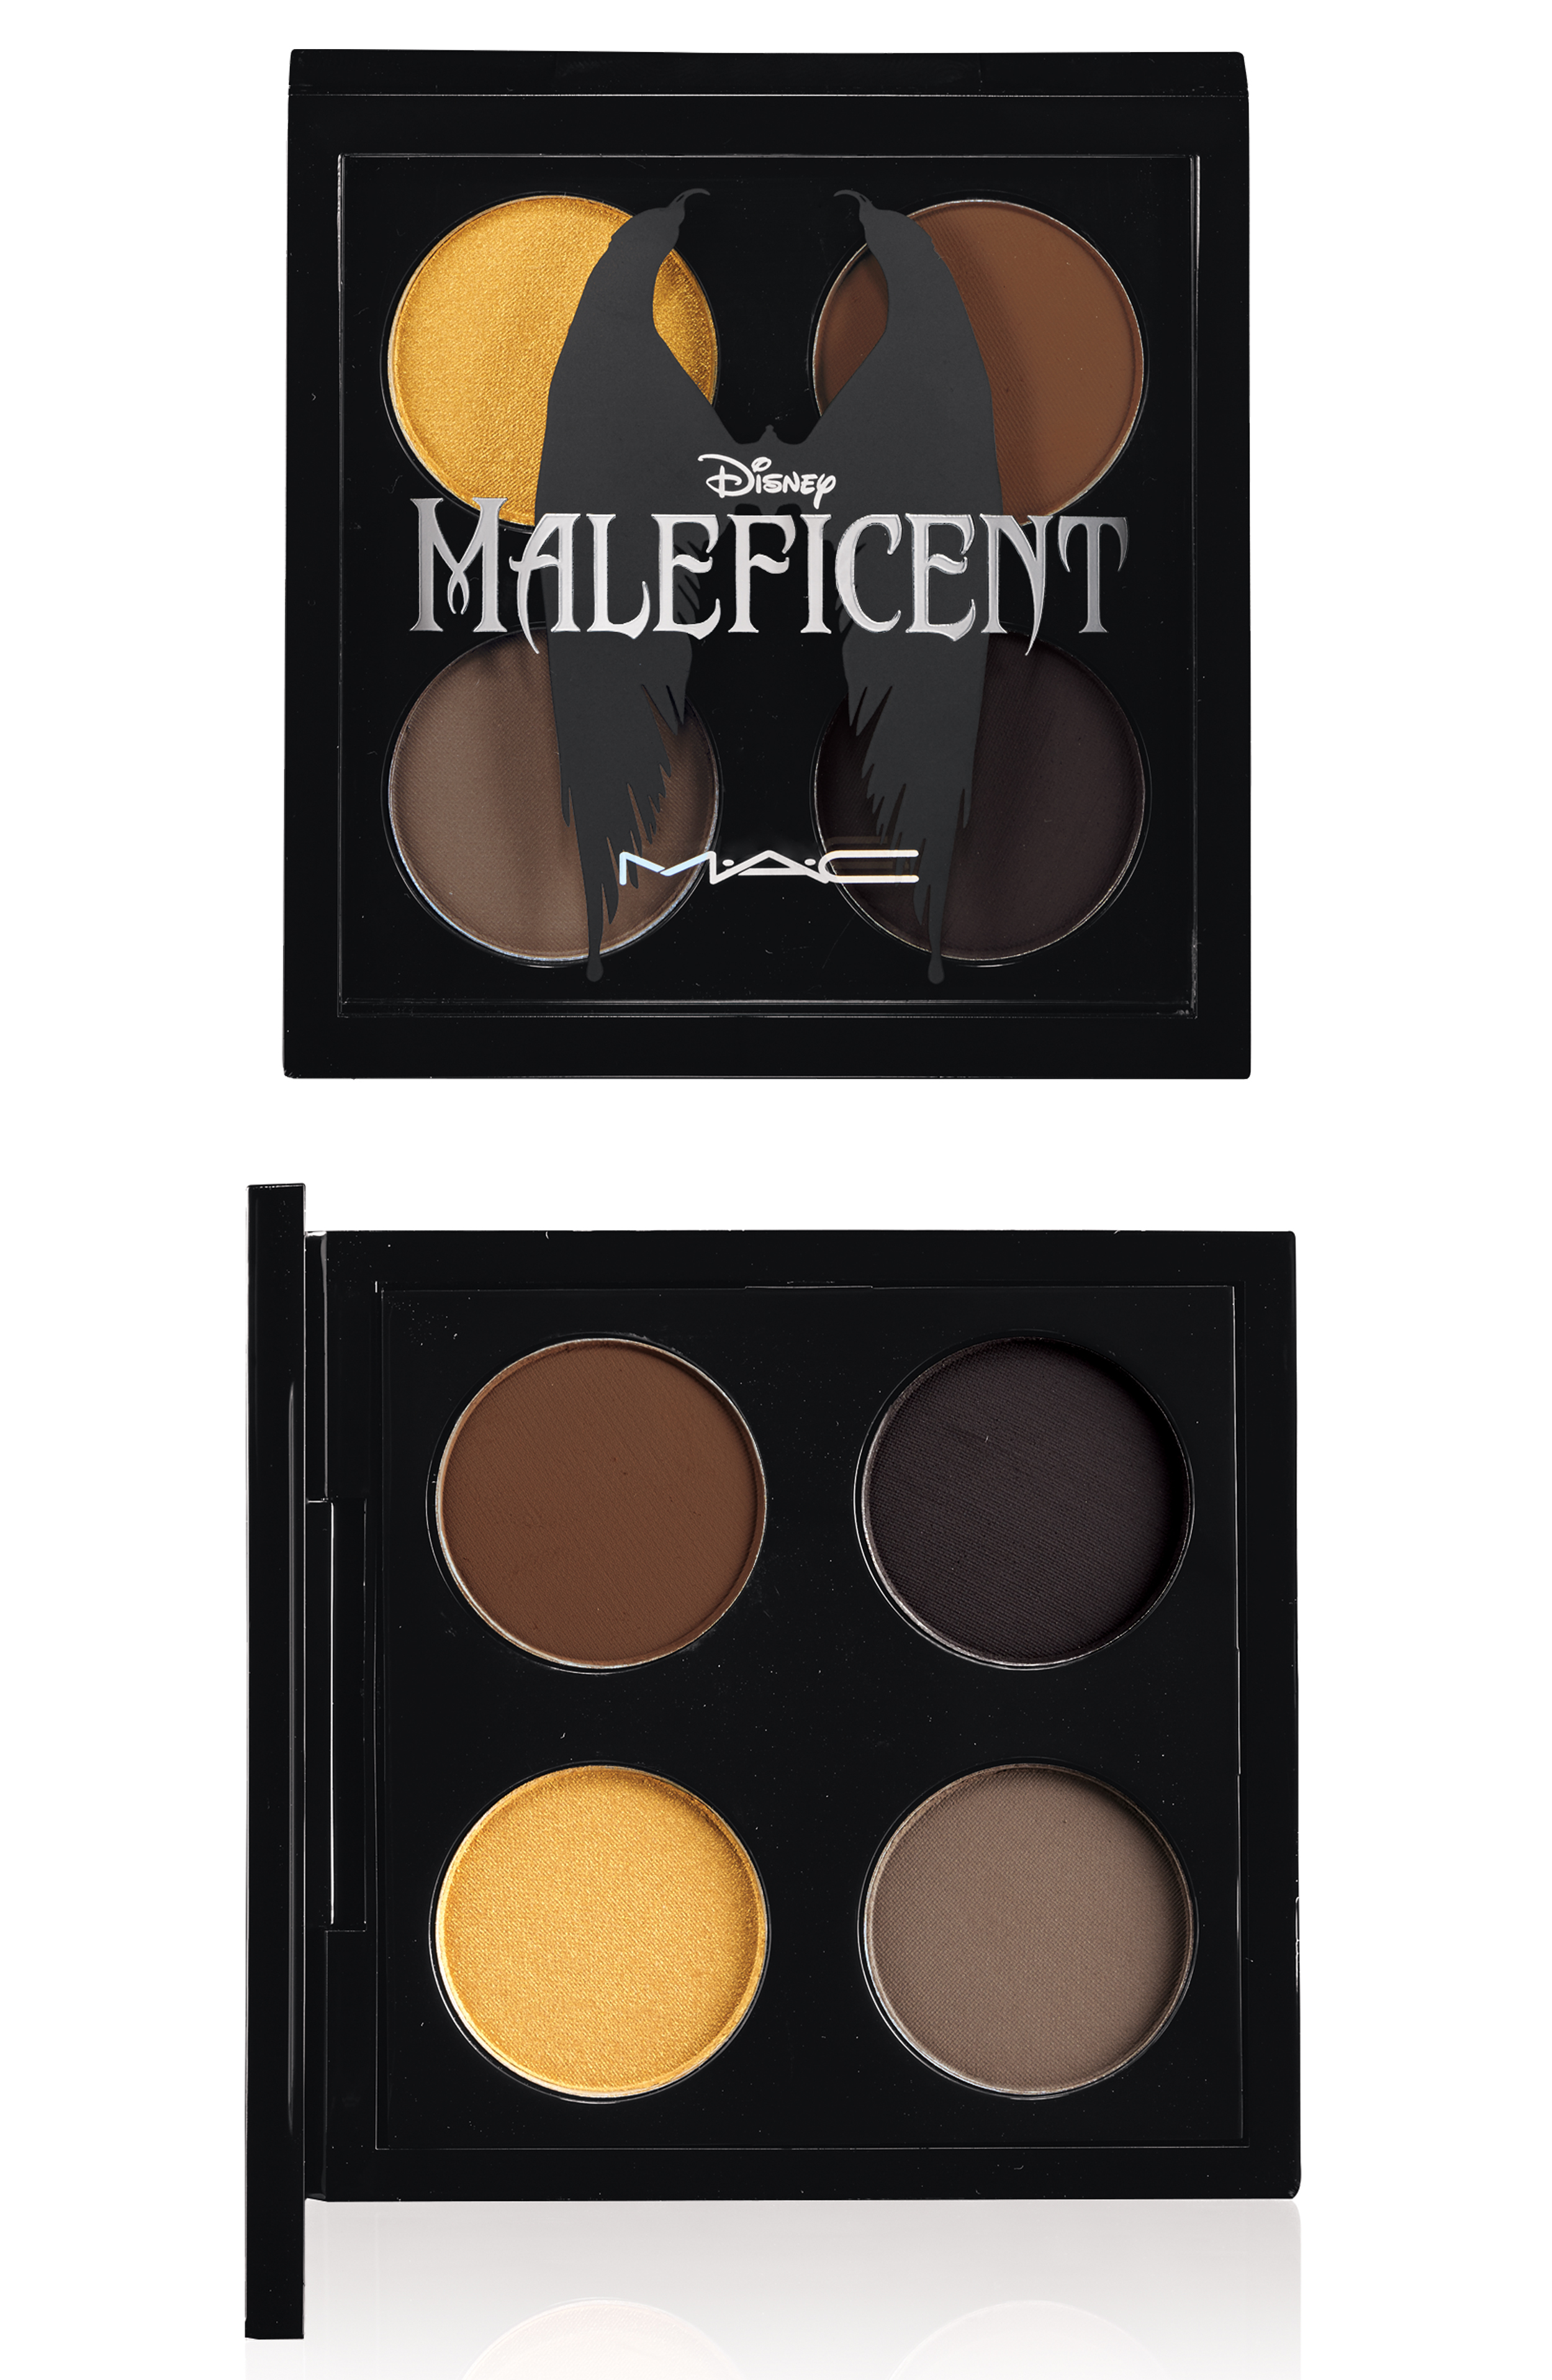 Maleficent Collection by MAC Cosmetics available at select MAC stores and Macy's (Photo: Business Wire)